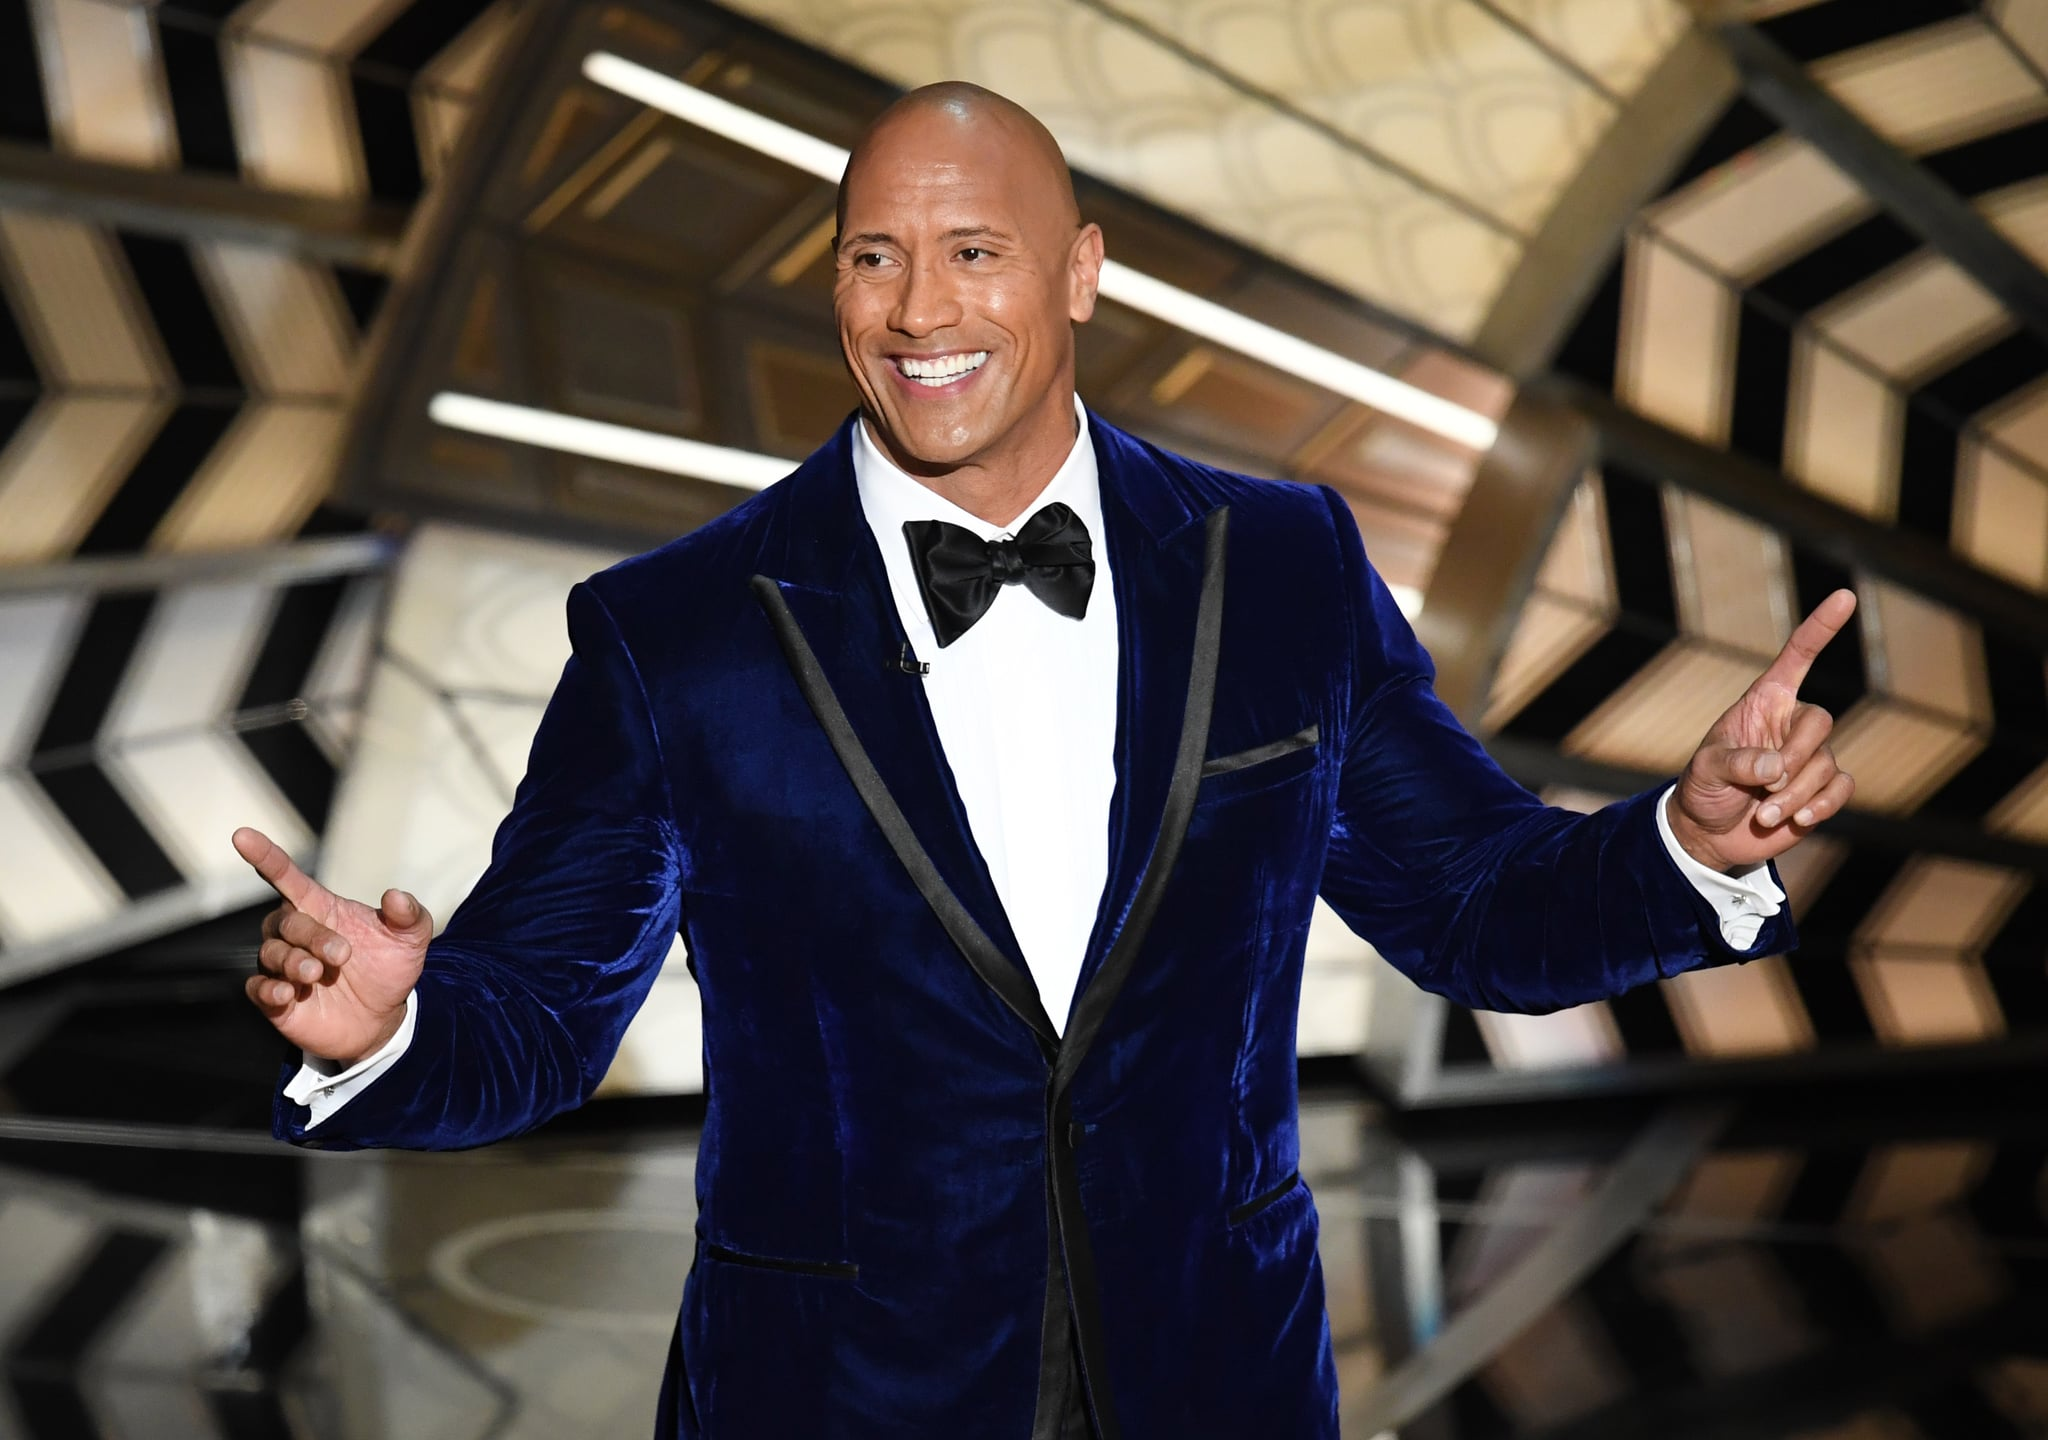 HOLLYWOOD, CA - FEBRUARY 26:  Actor Dwayne Johnson onstage during the 89th Annual Academy Awards at Hollywood & Highland Center on February 26, 2017 in Hollywood, California.  (Photo by Kevin Winter/Getty Images)